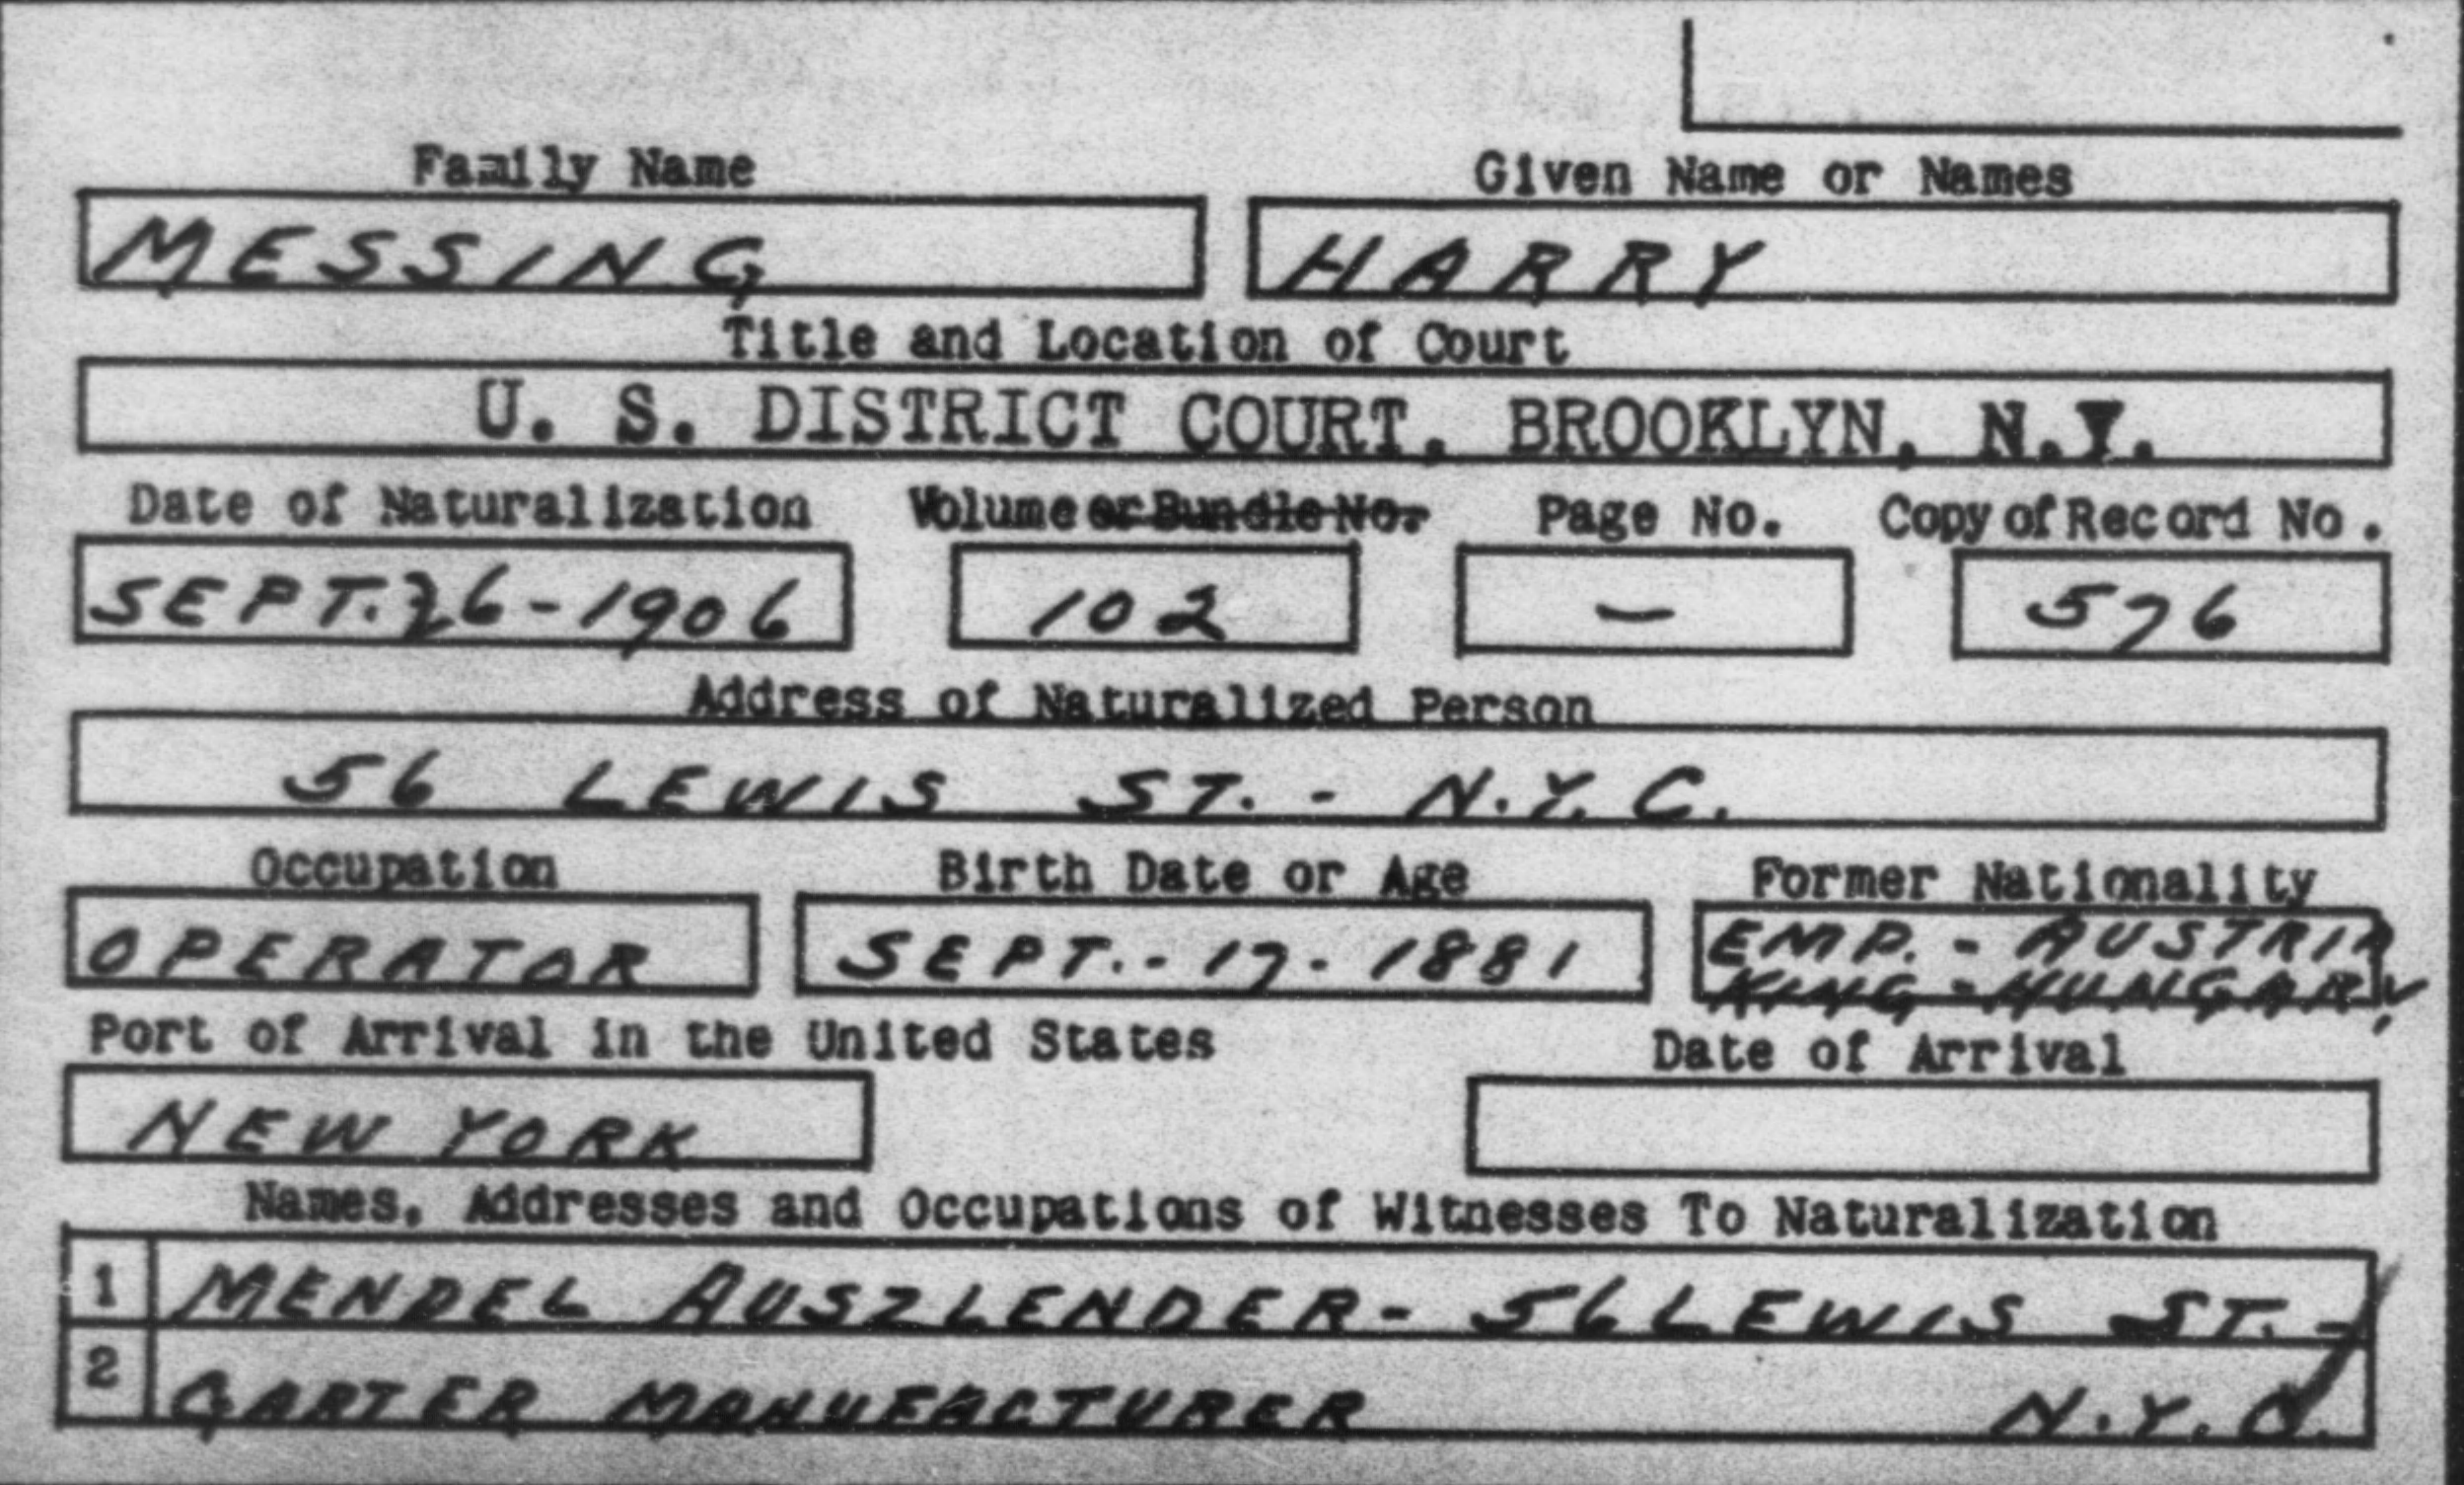 MESSING, HARRY - Born: 1881, Naturalized: 1906